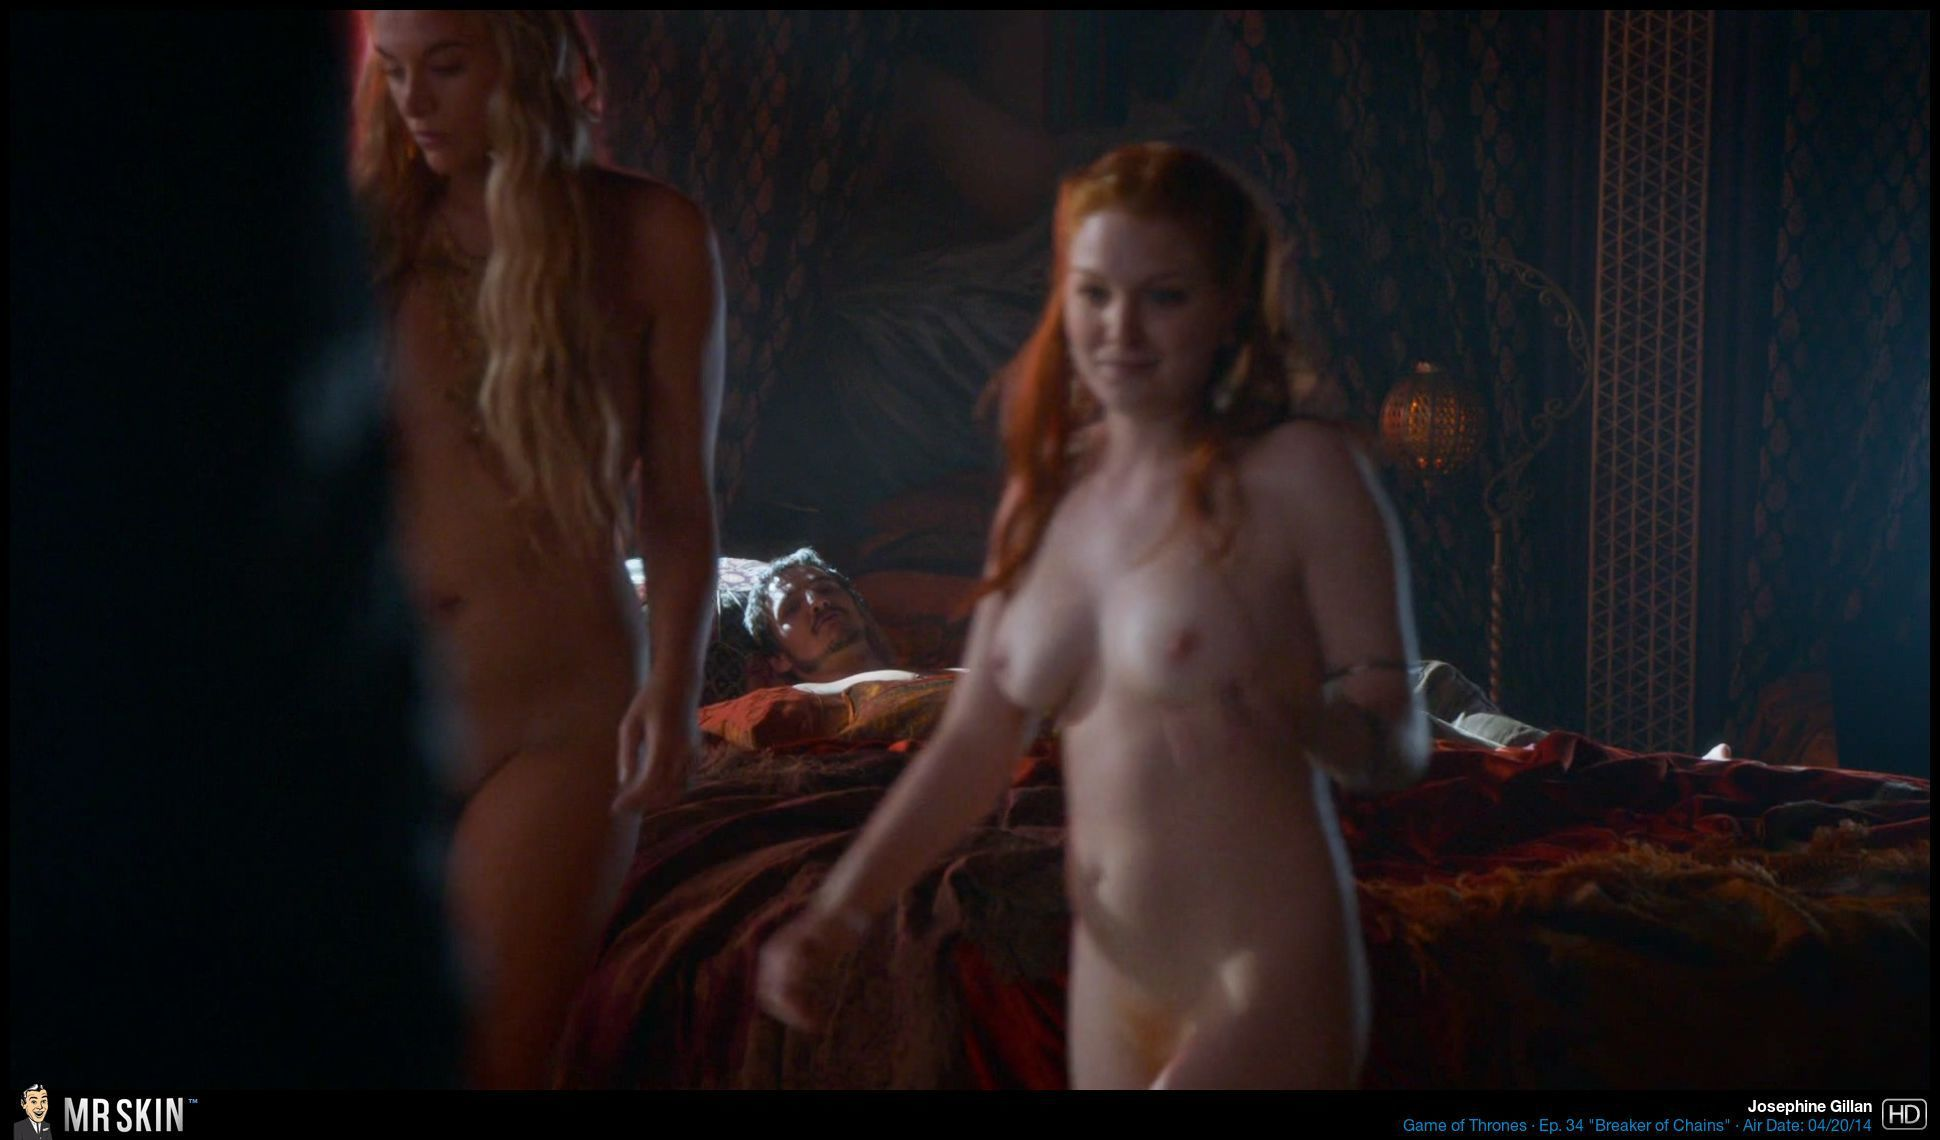 From dusk till dawn nude scenes